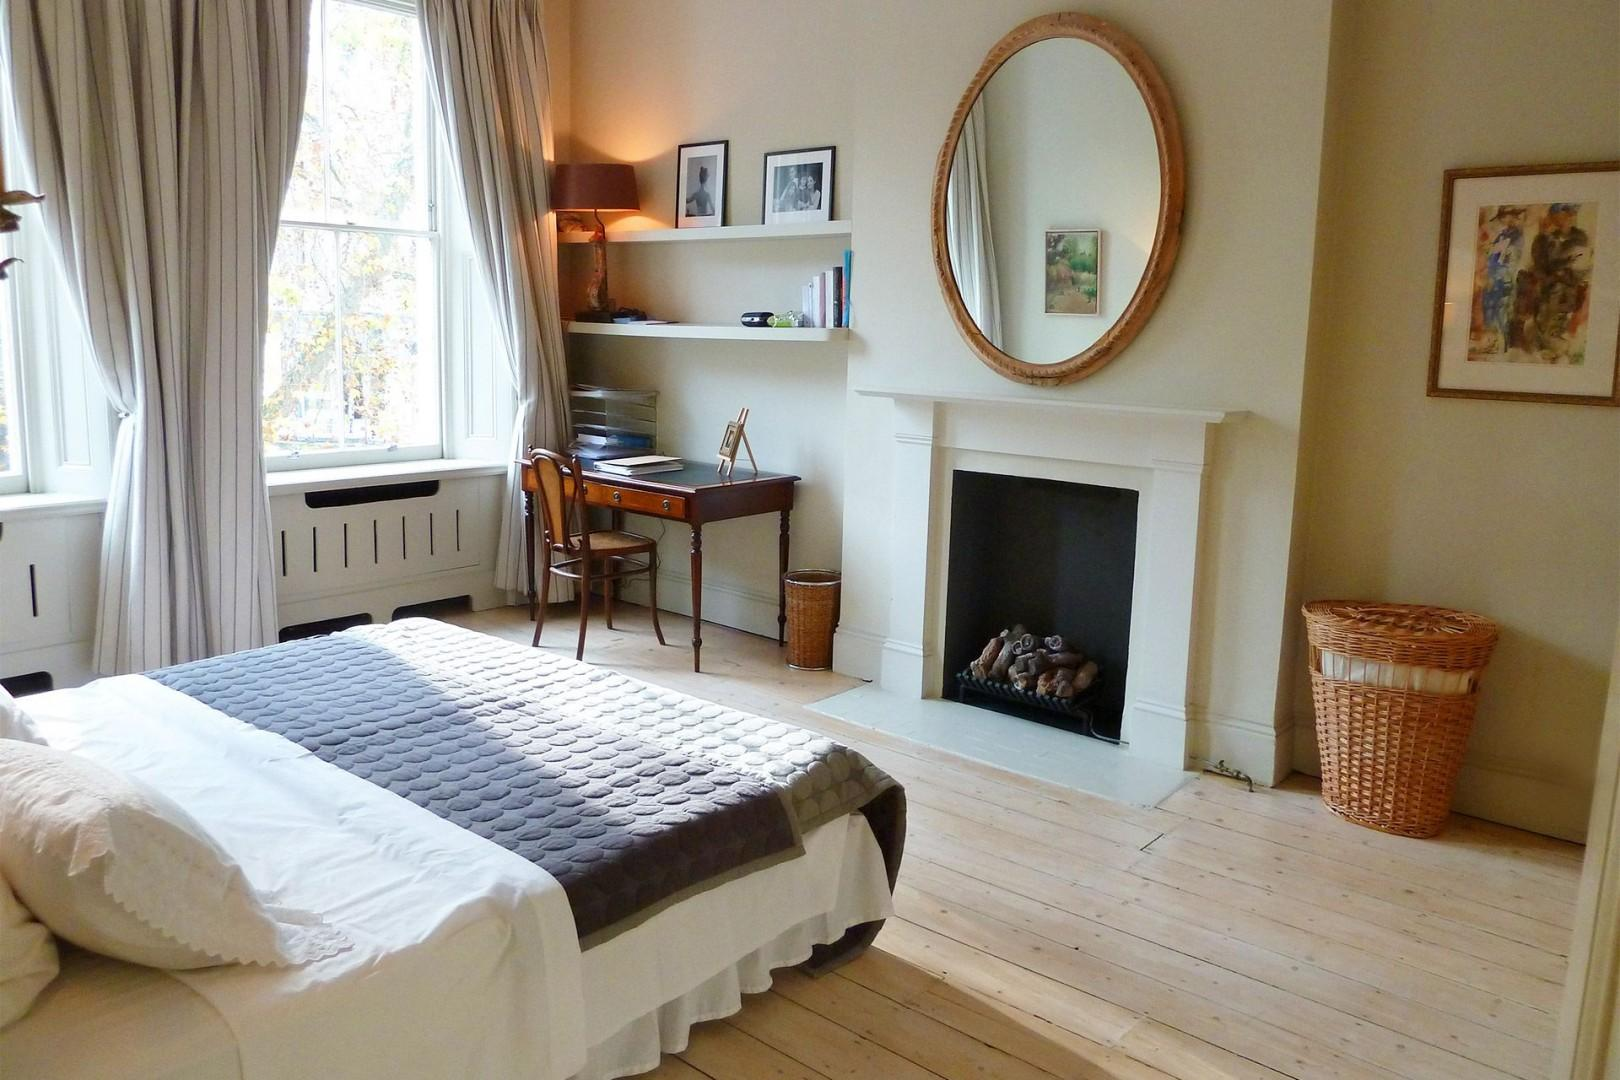 Beautiful English bedroom antiques, bleached oak floors and fireplace